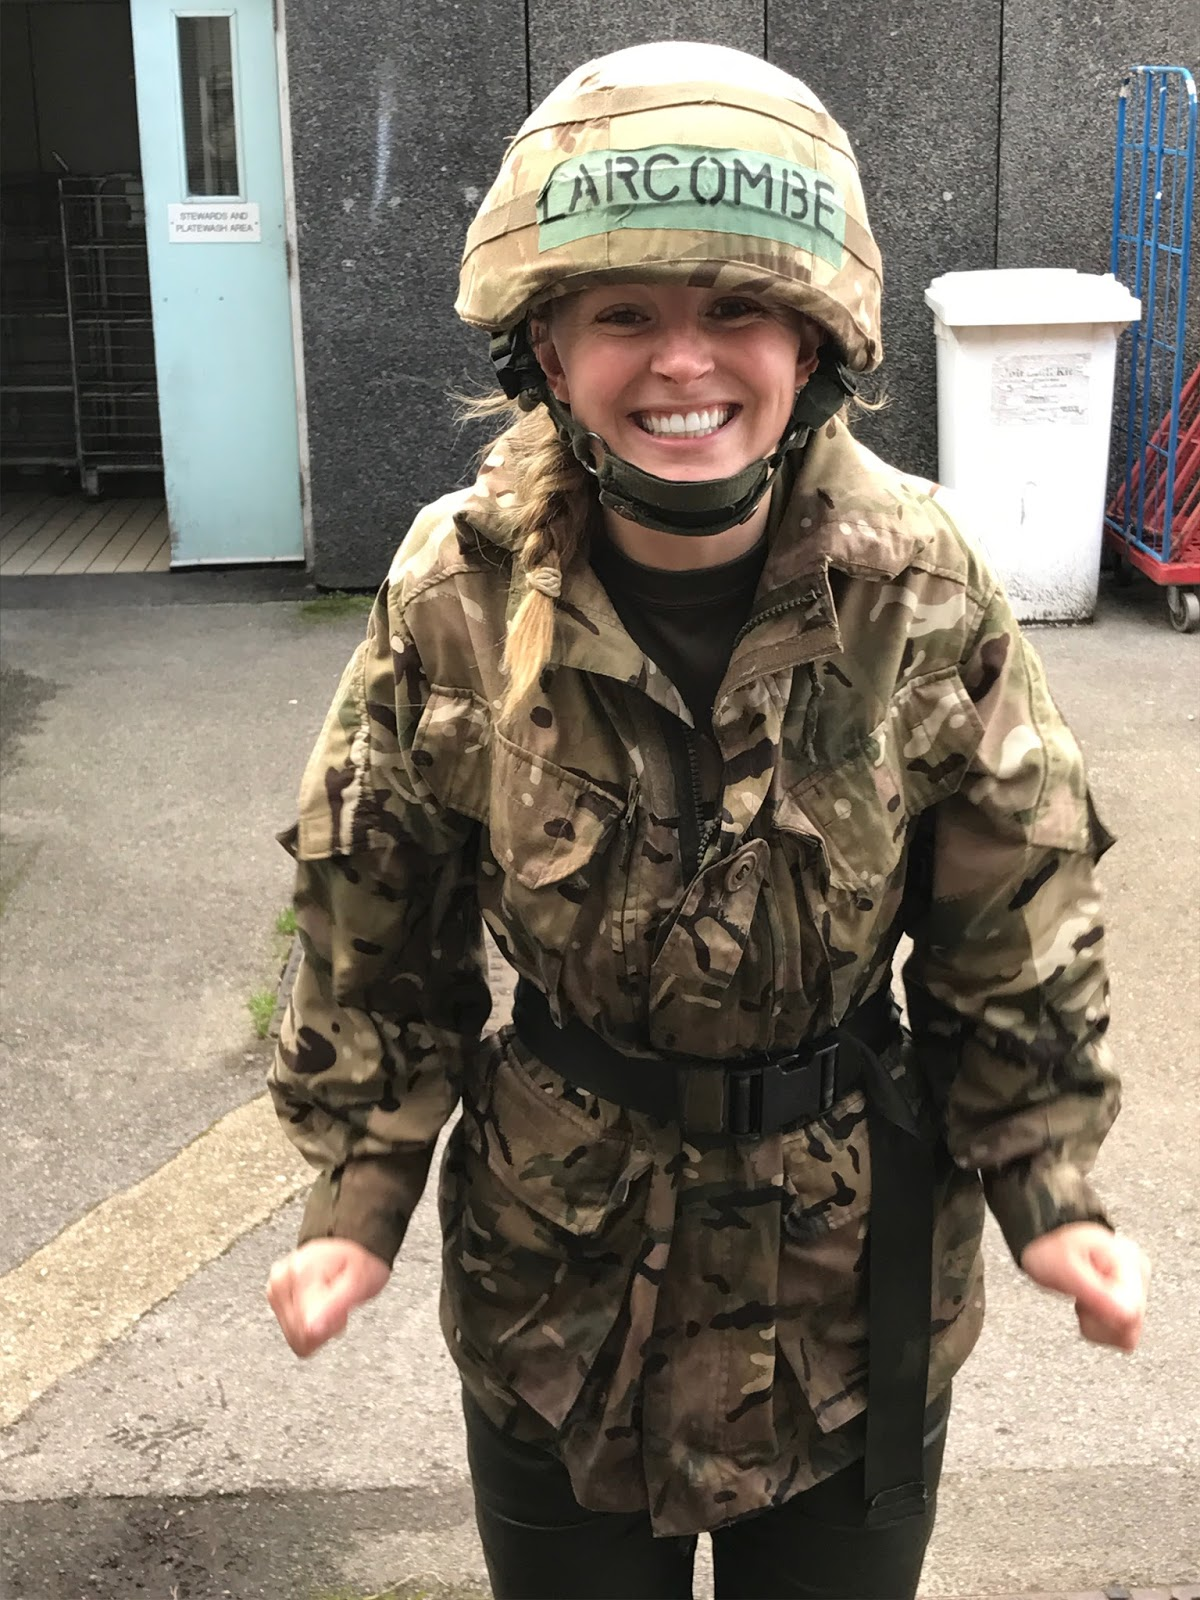 Female army uniform uk